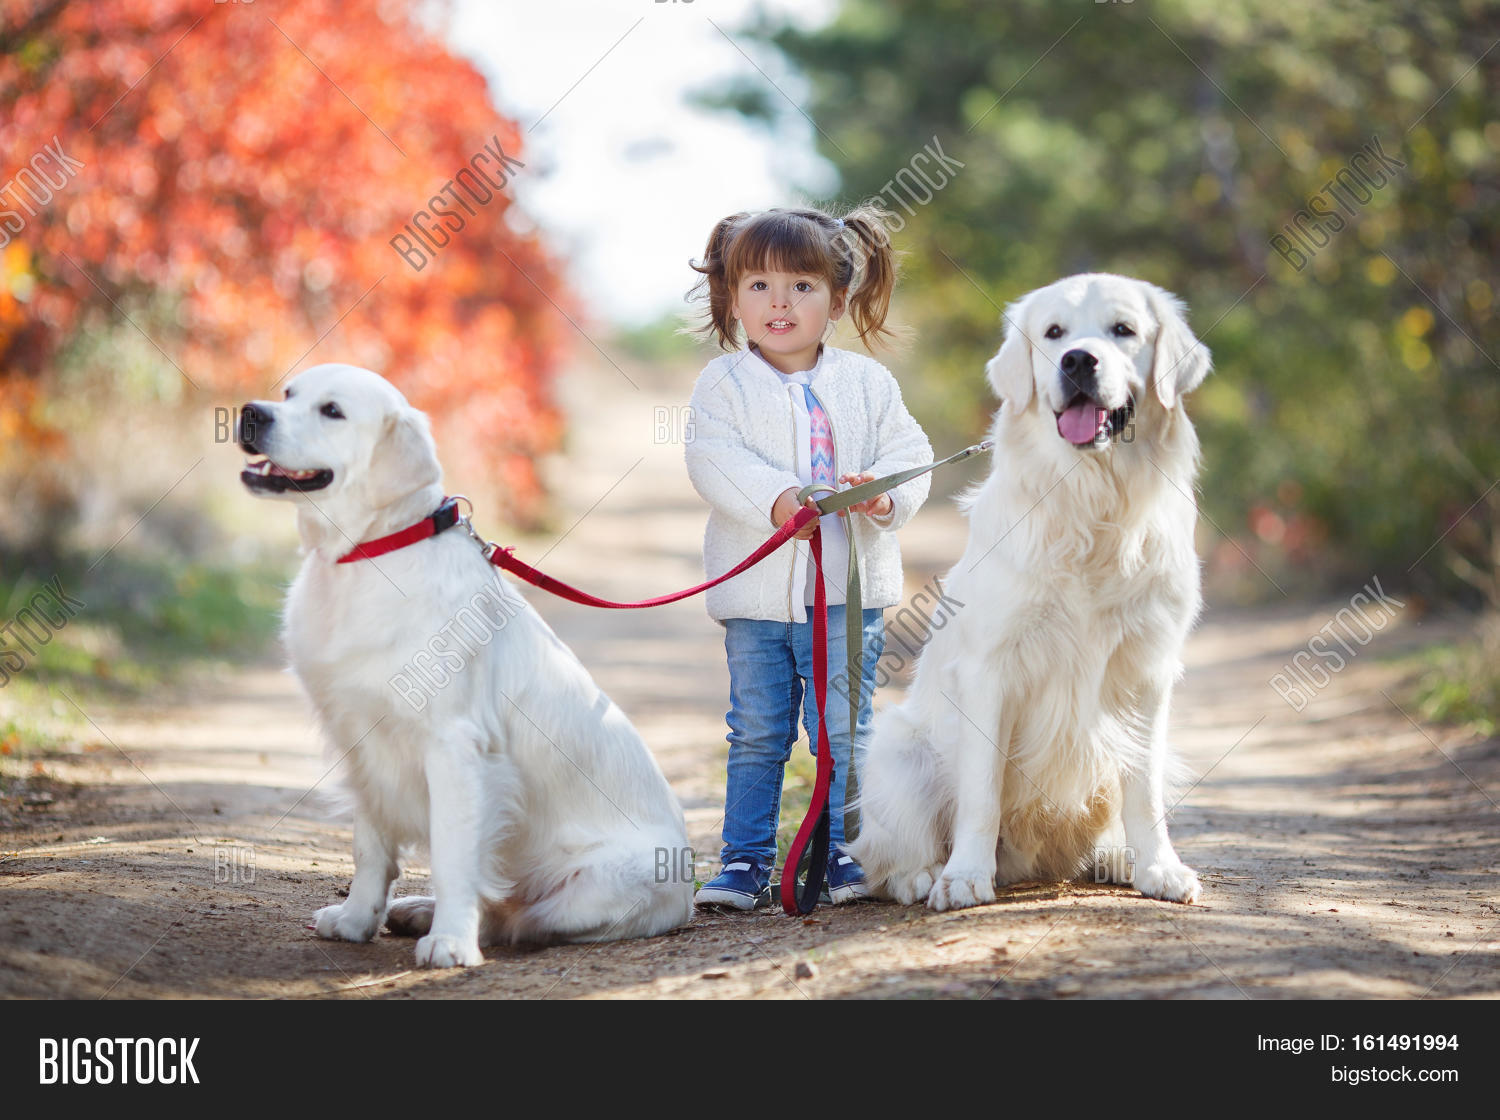 Little Cute Girl Image Photo Free Trial Bigstock